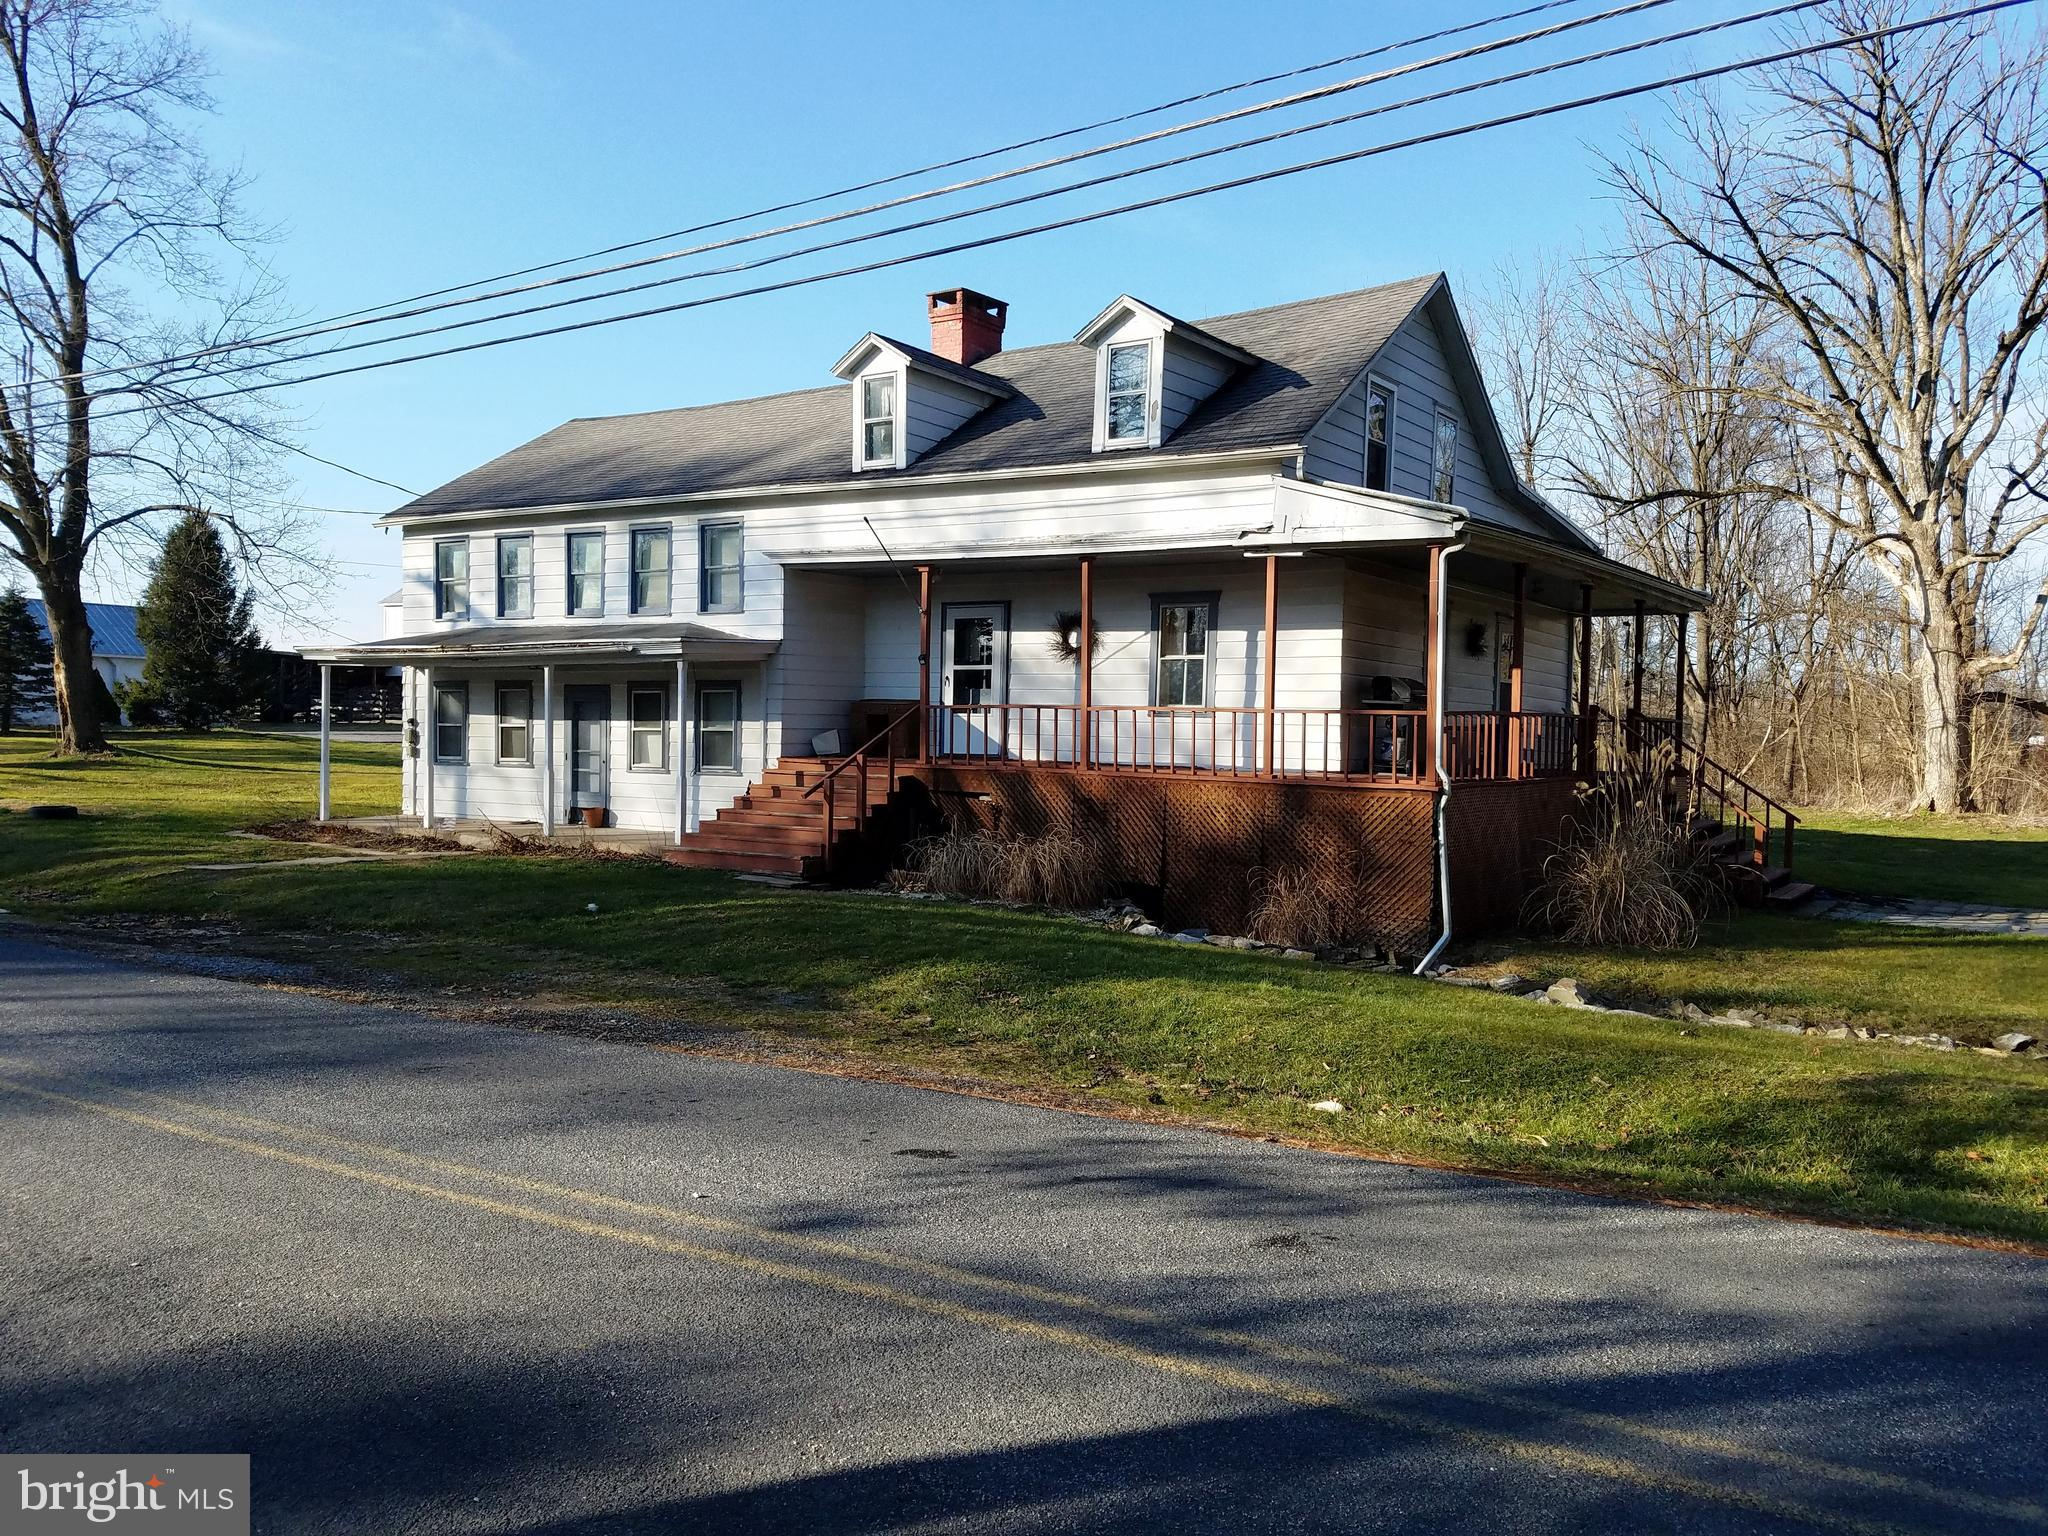 1460 LUTZTOWN ROAD, BOILING SPRINGS, PA 17007